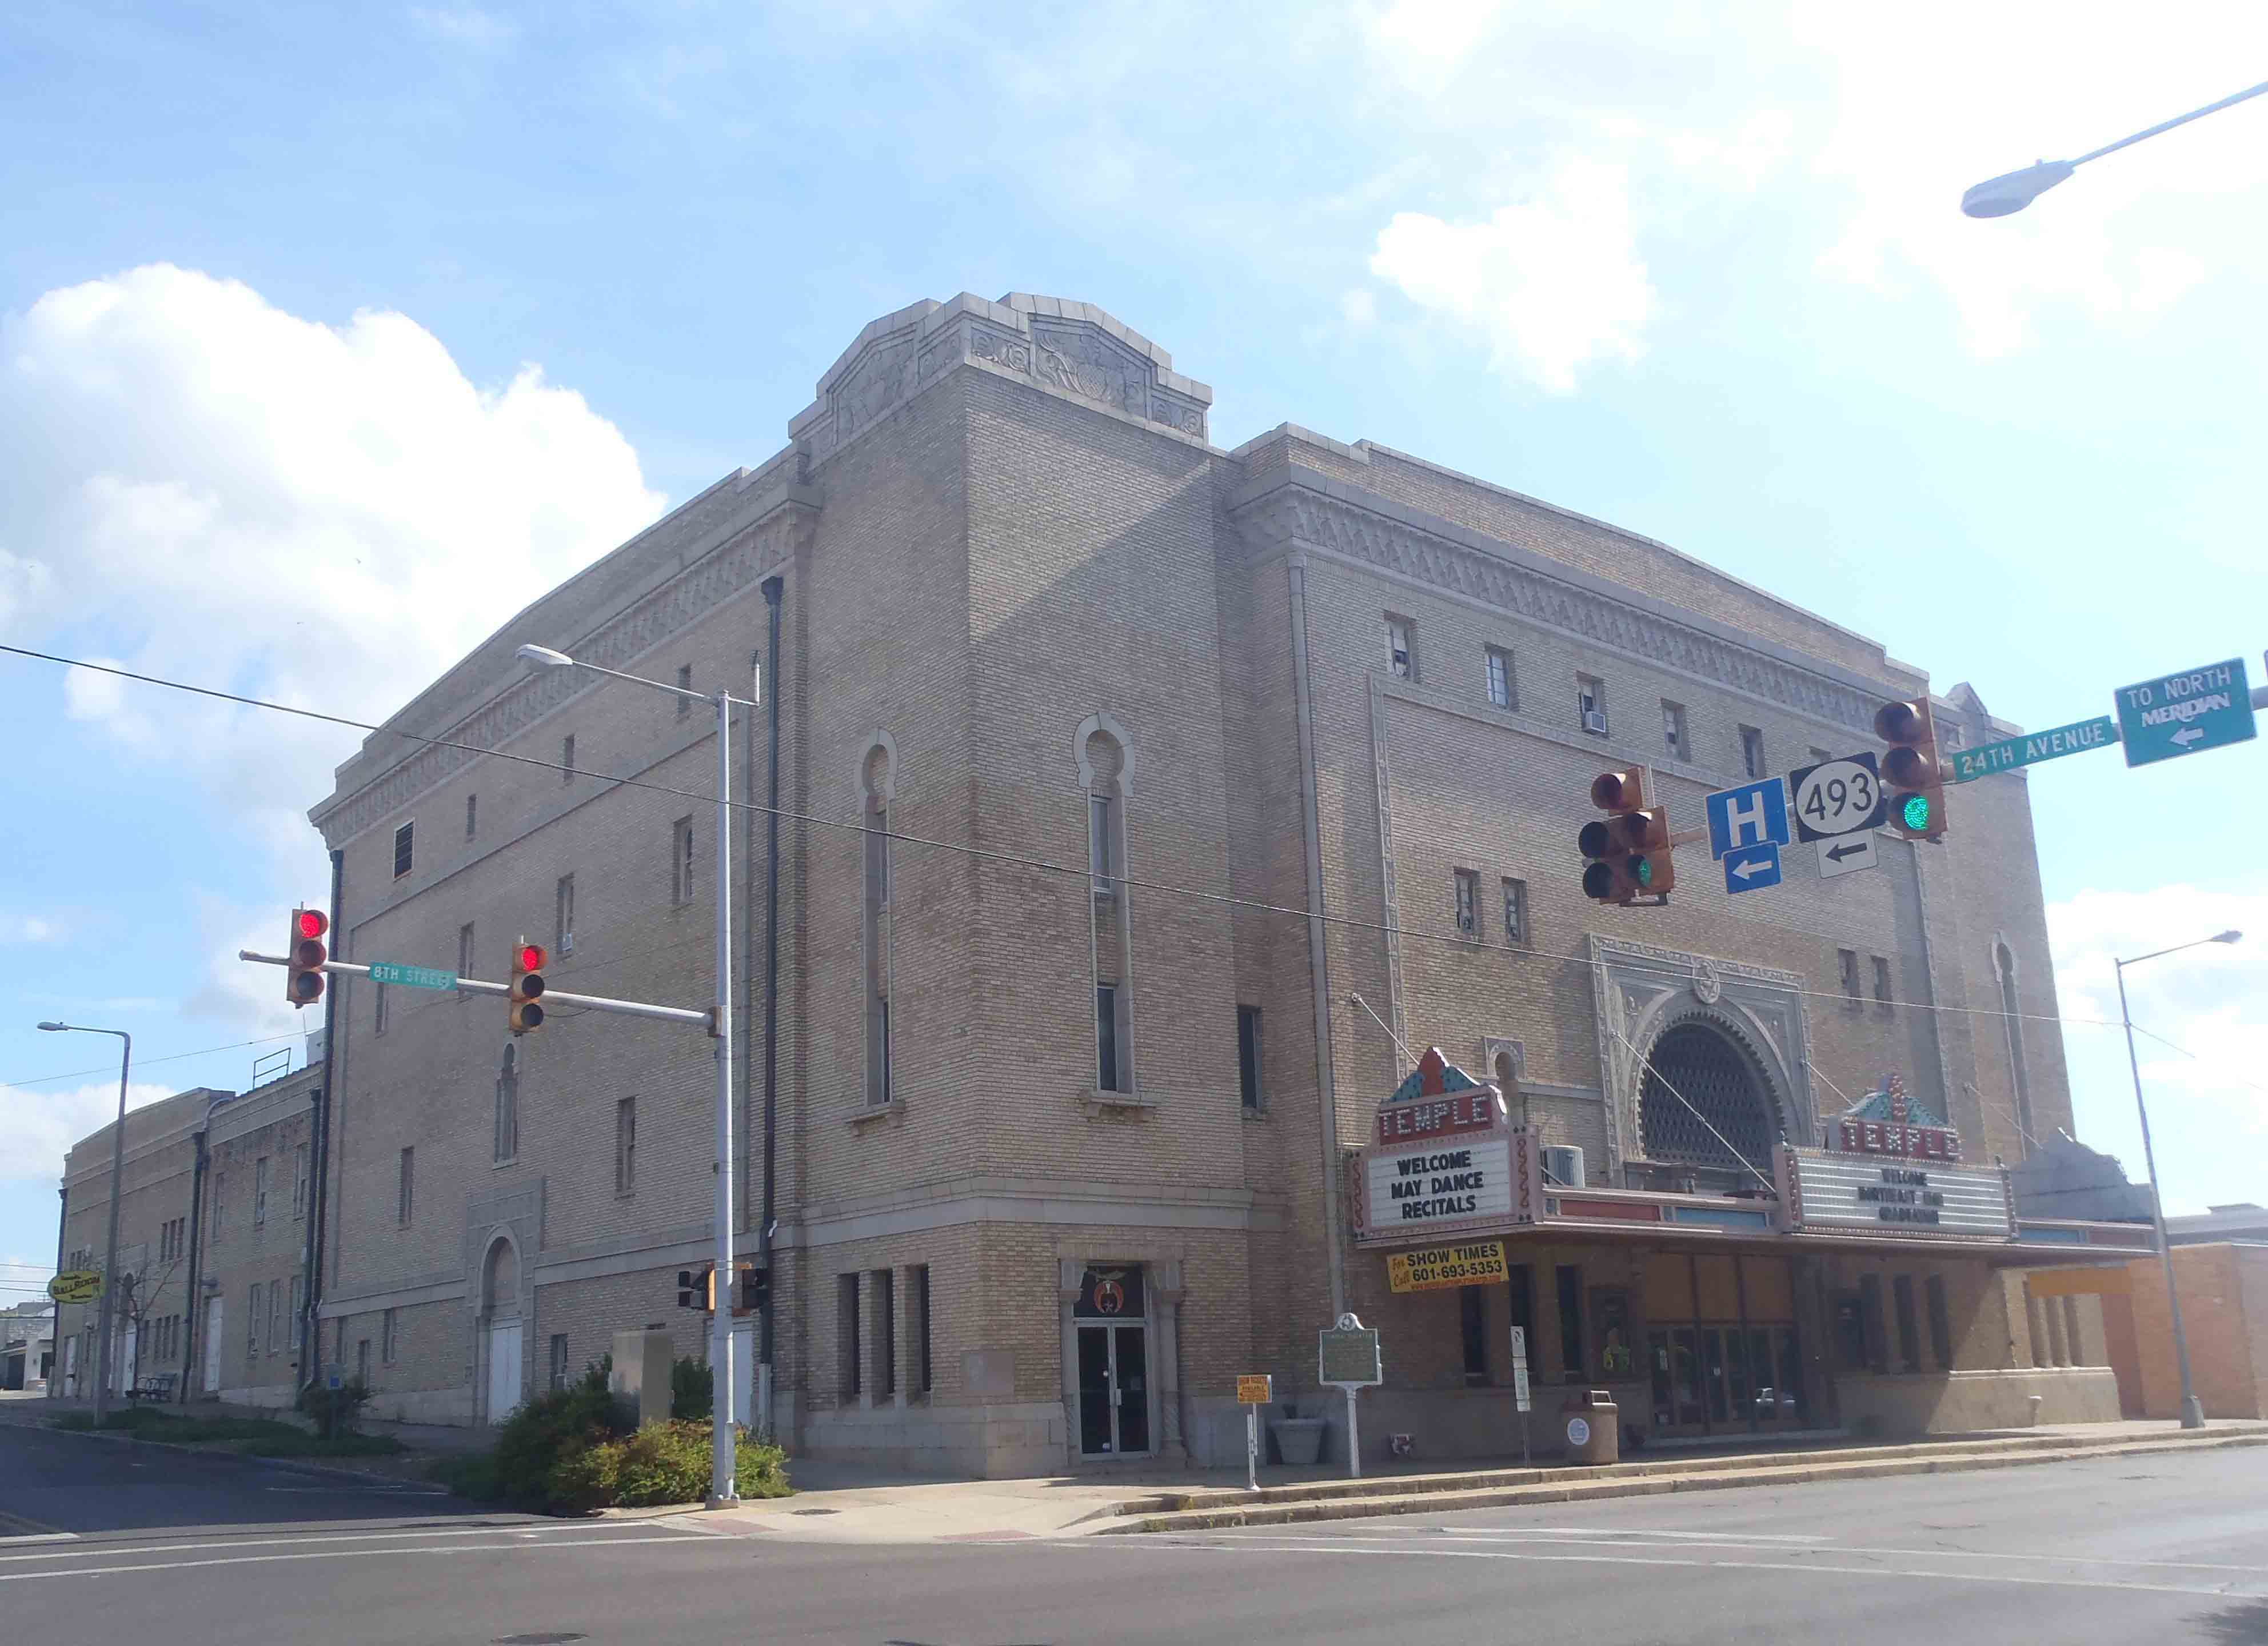 Temple Theater, Meridian, Mississippi. Built between 1923-1927 by Hamasa Shriners